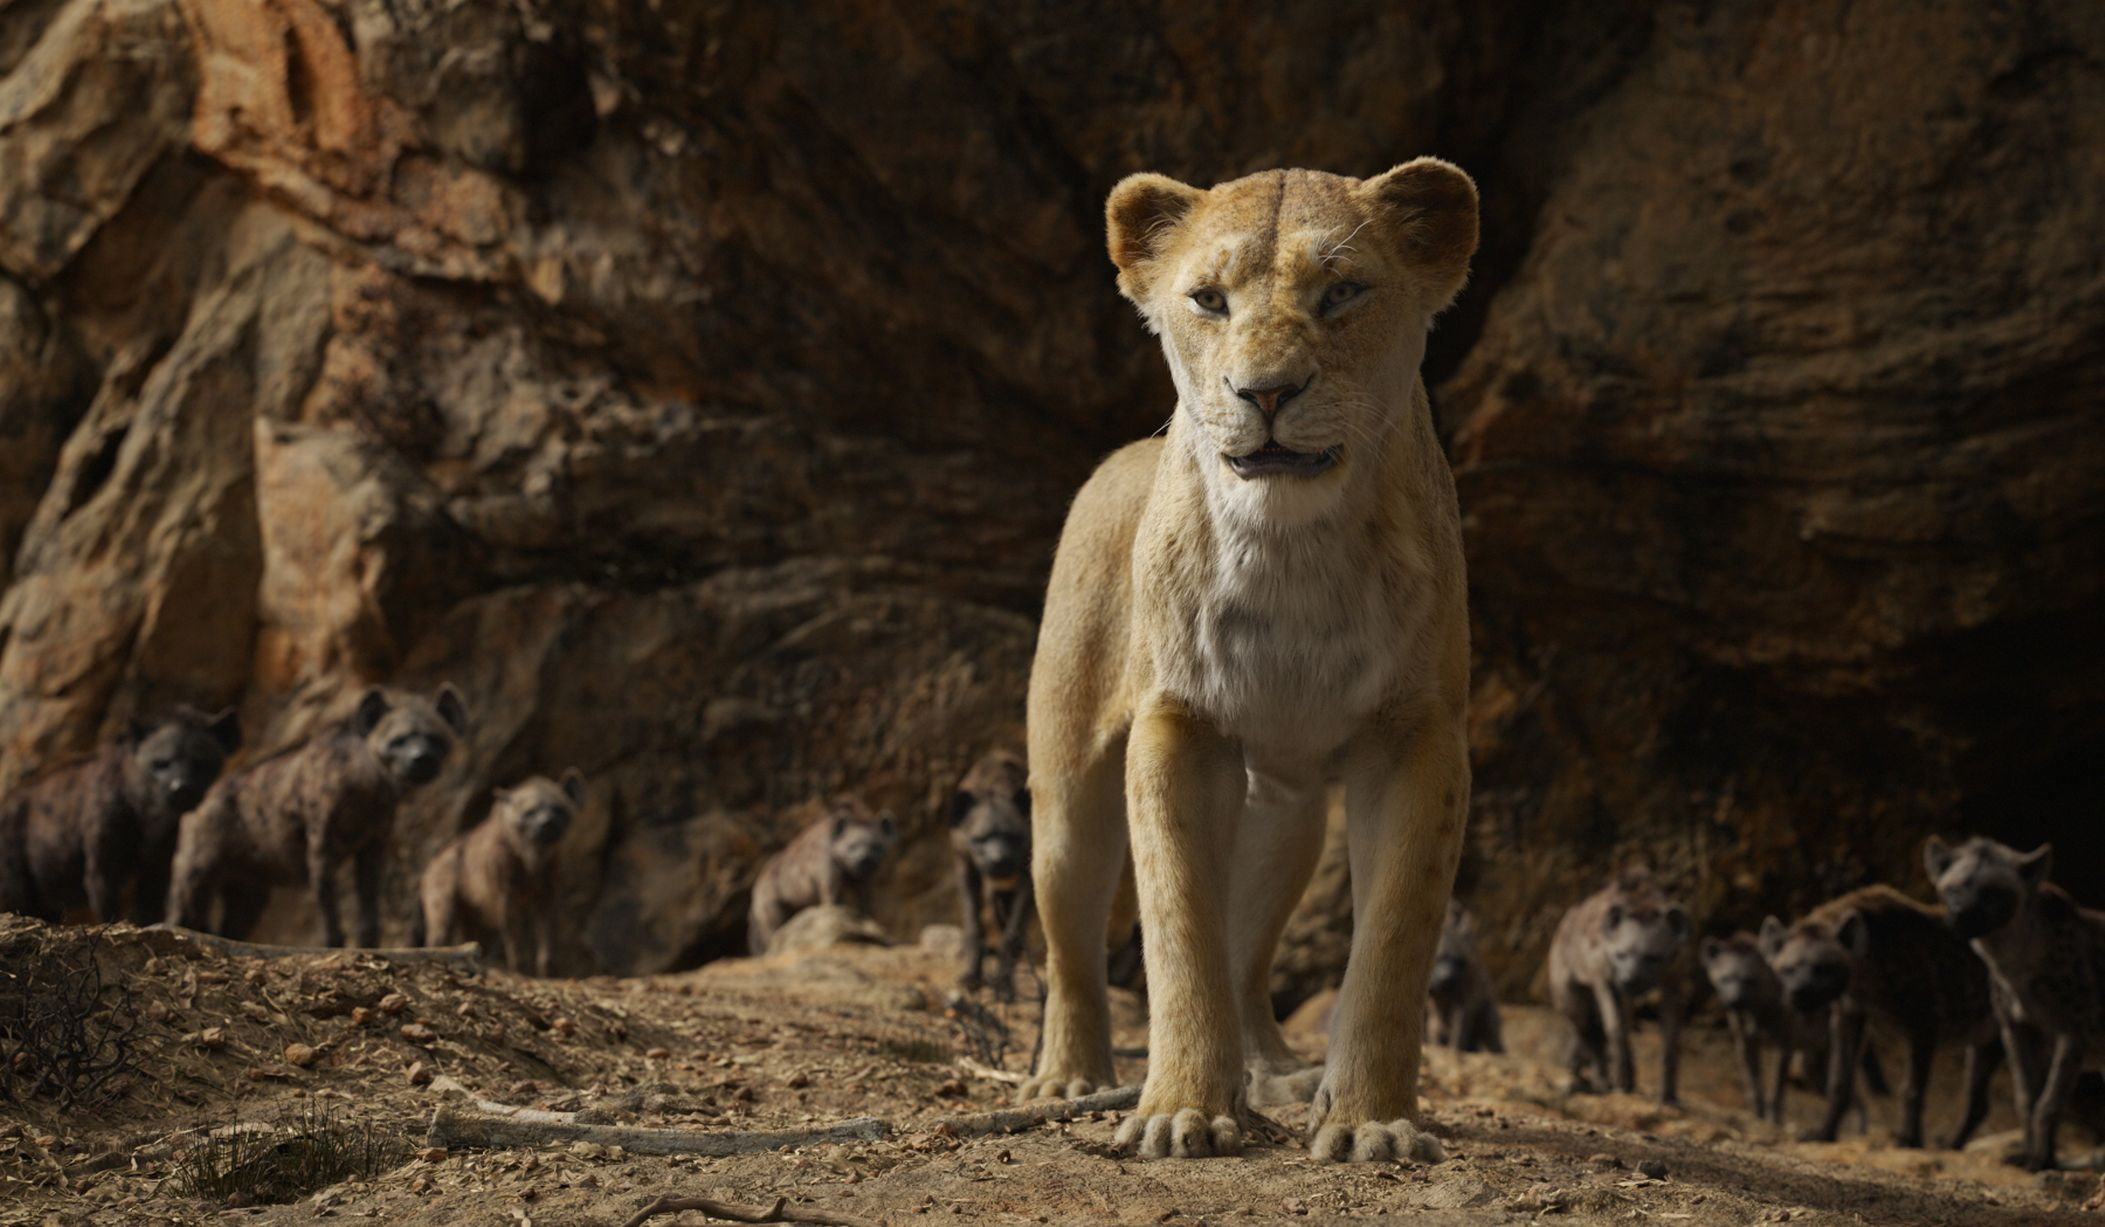 The Lion King's revised songs are nearly as uncanny as its CGI